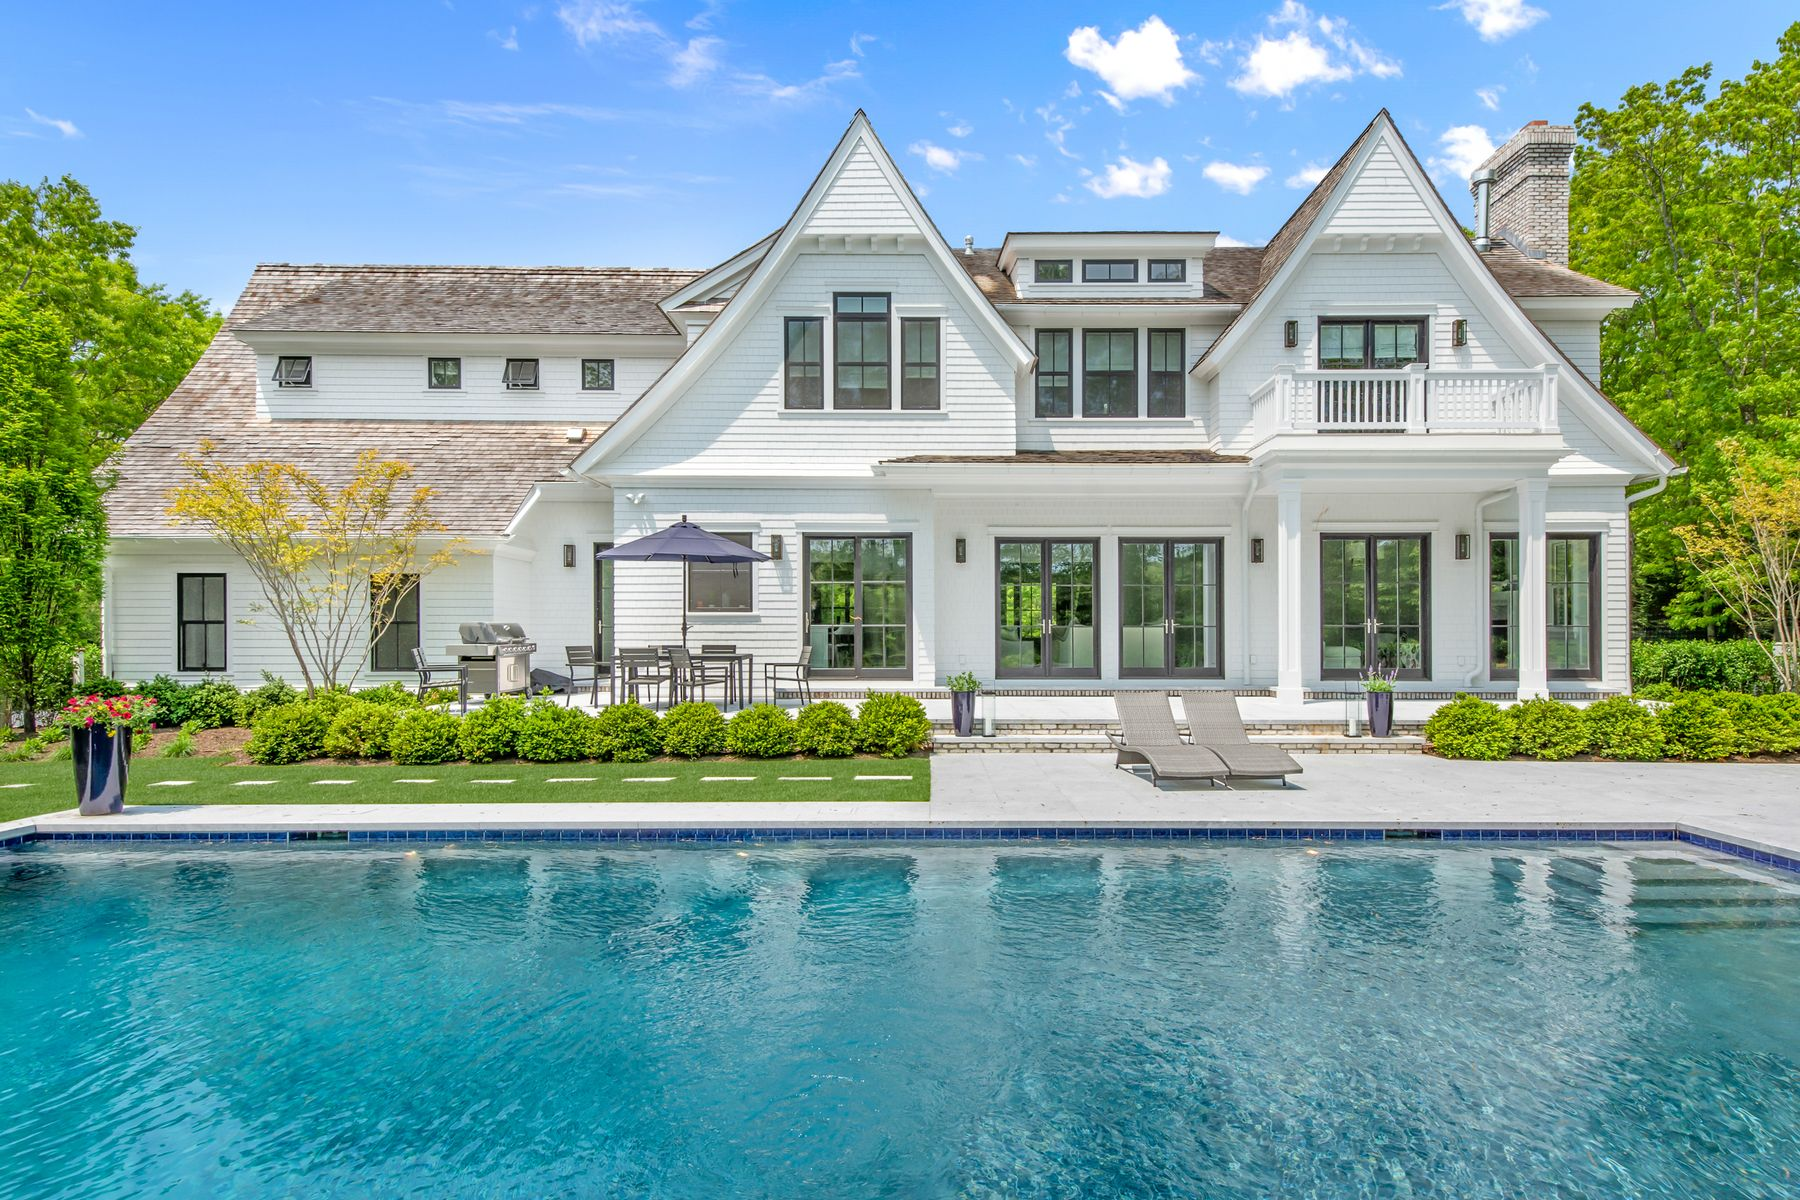 Property for Sale at Excellence in Architecture & Design Southampton, New York 11968 United States